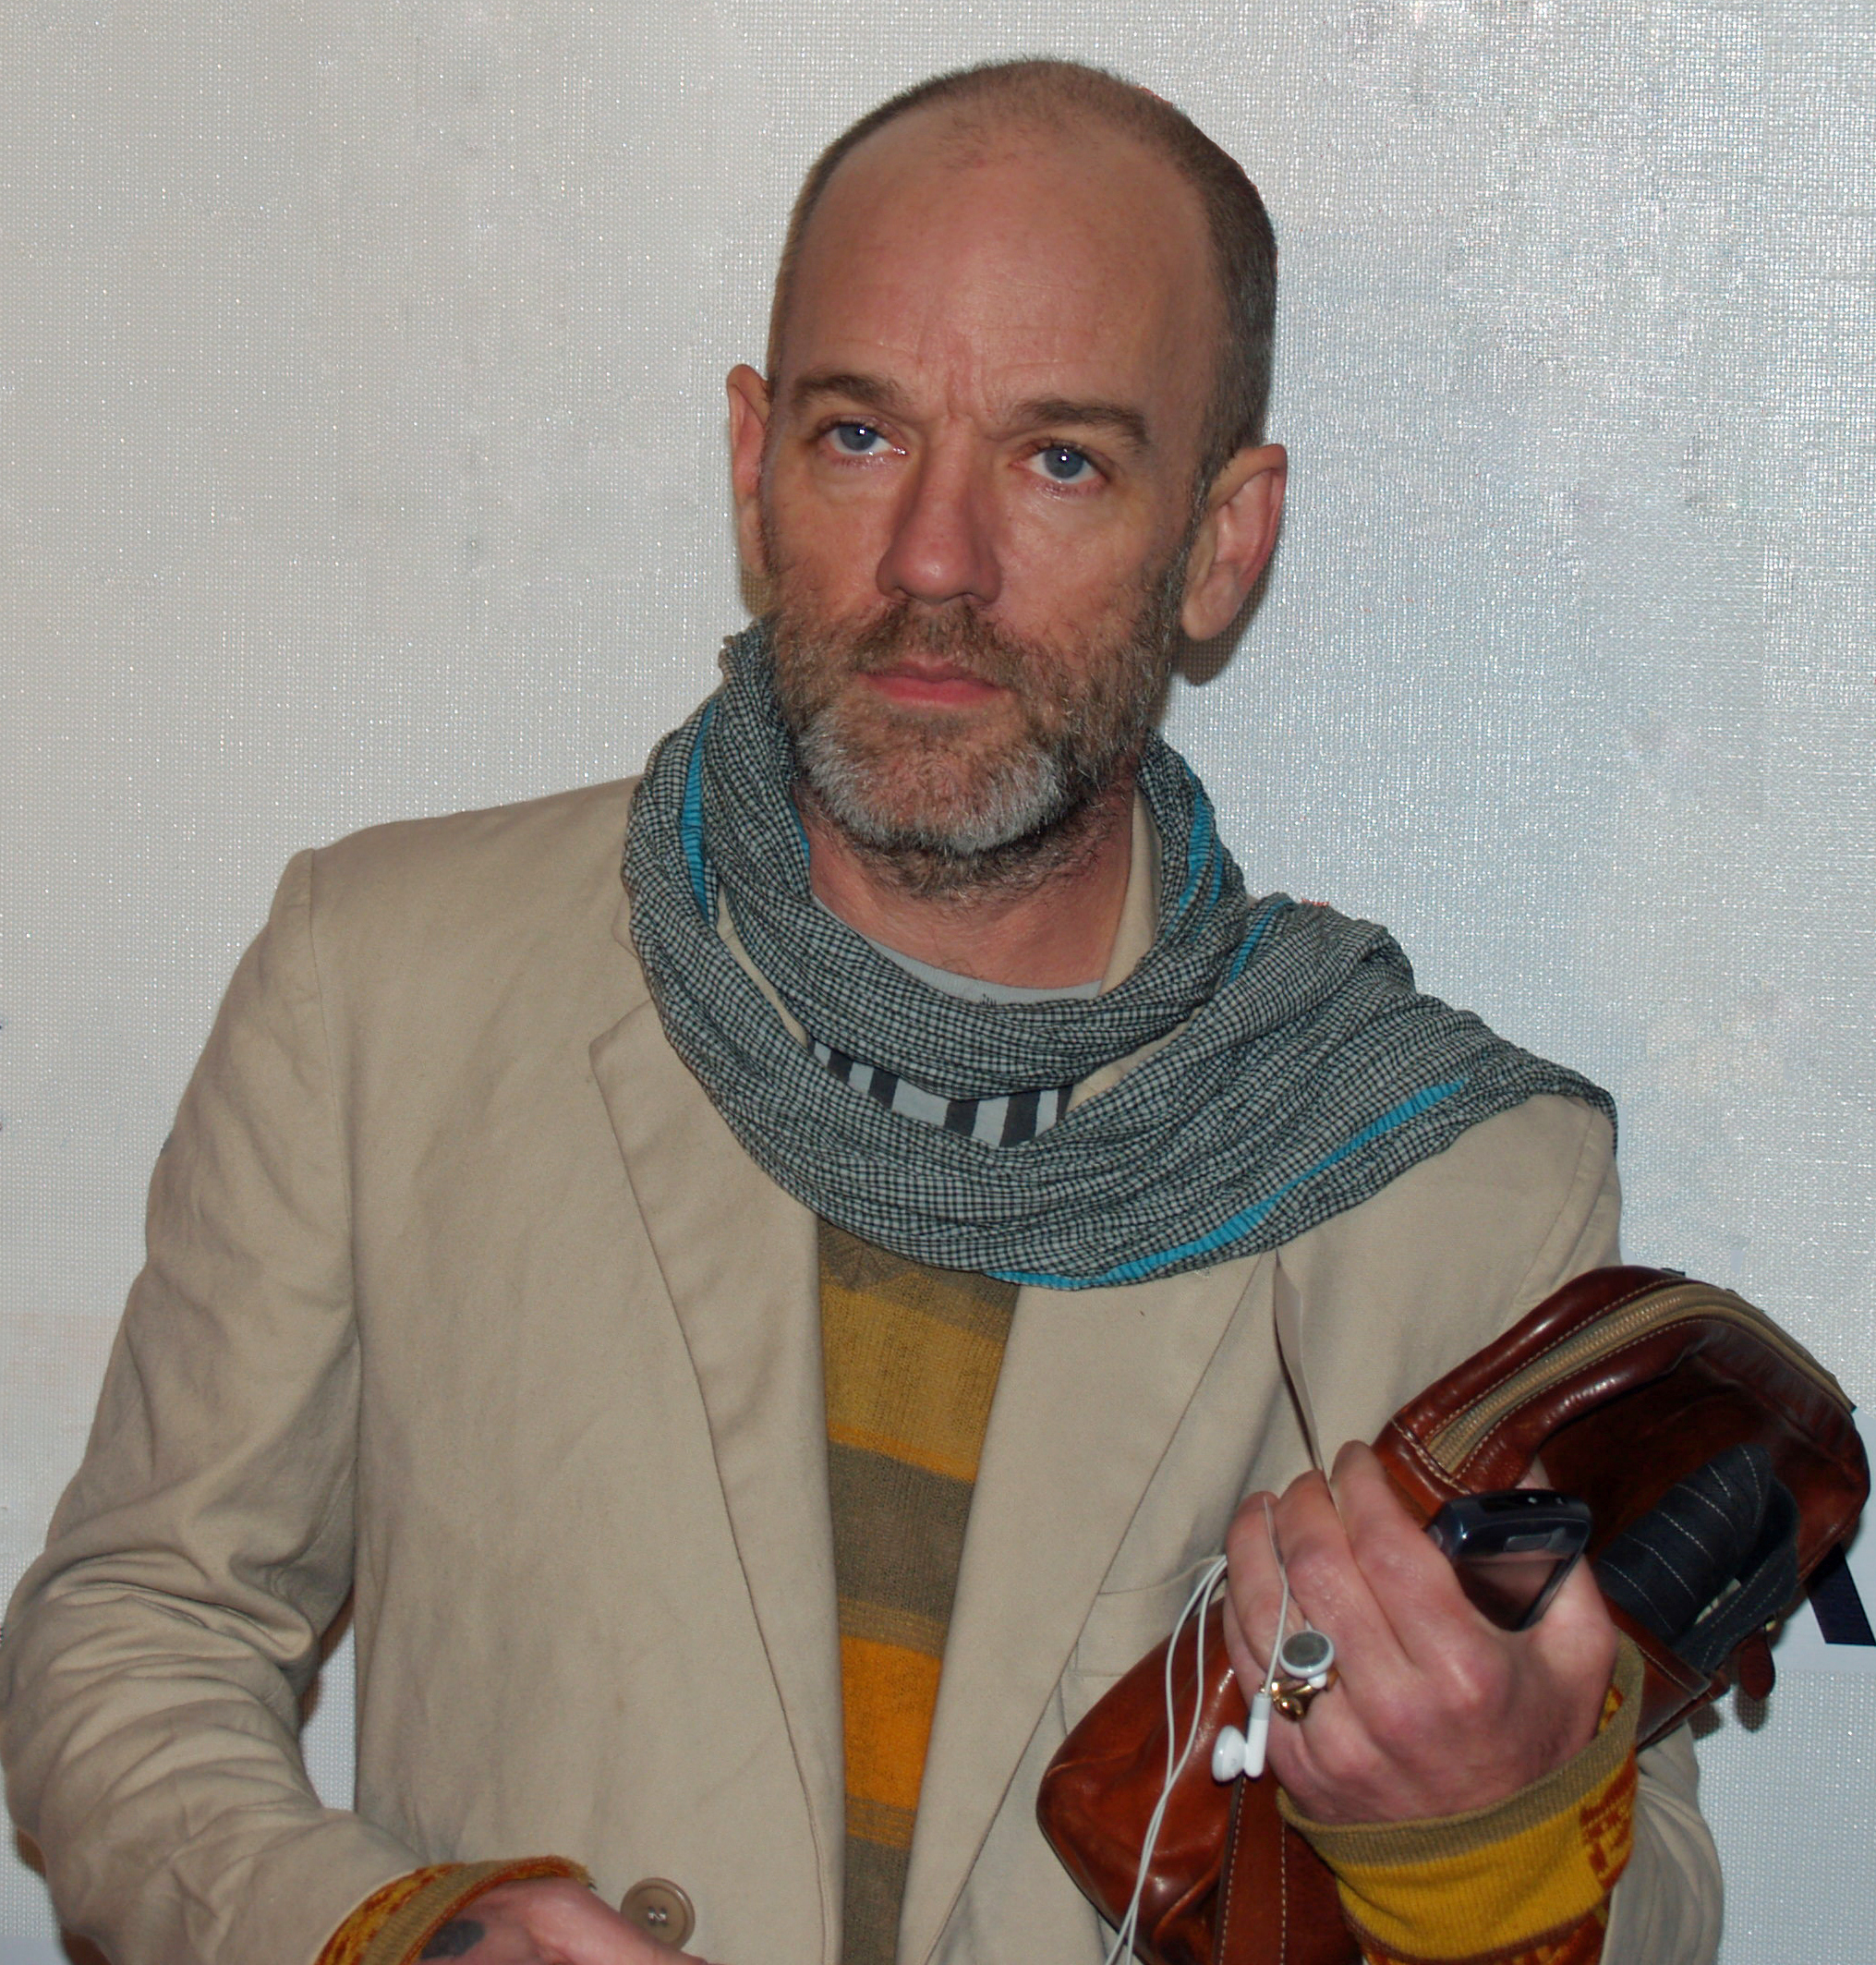 Image of Michael Stipe from Wikidata